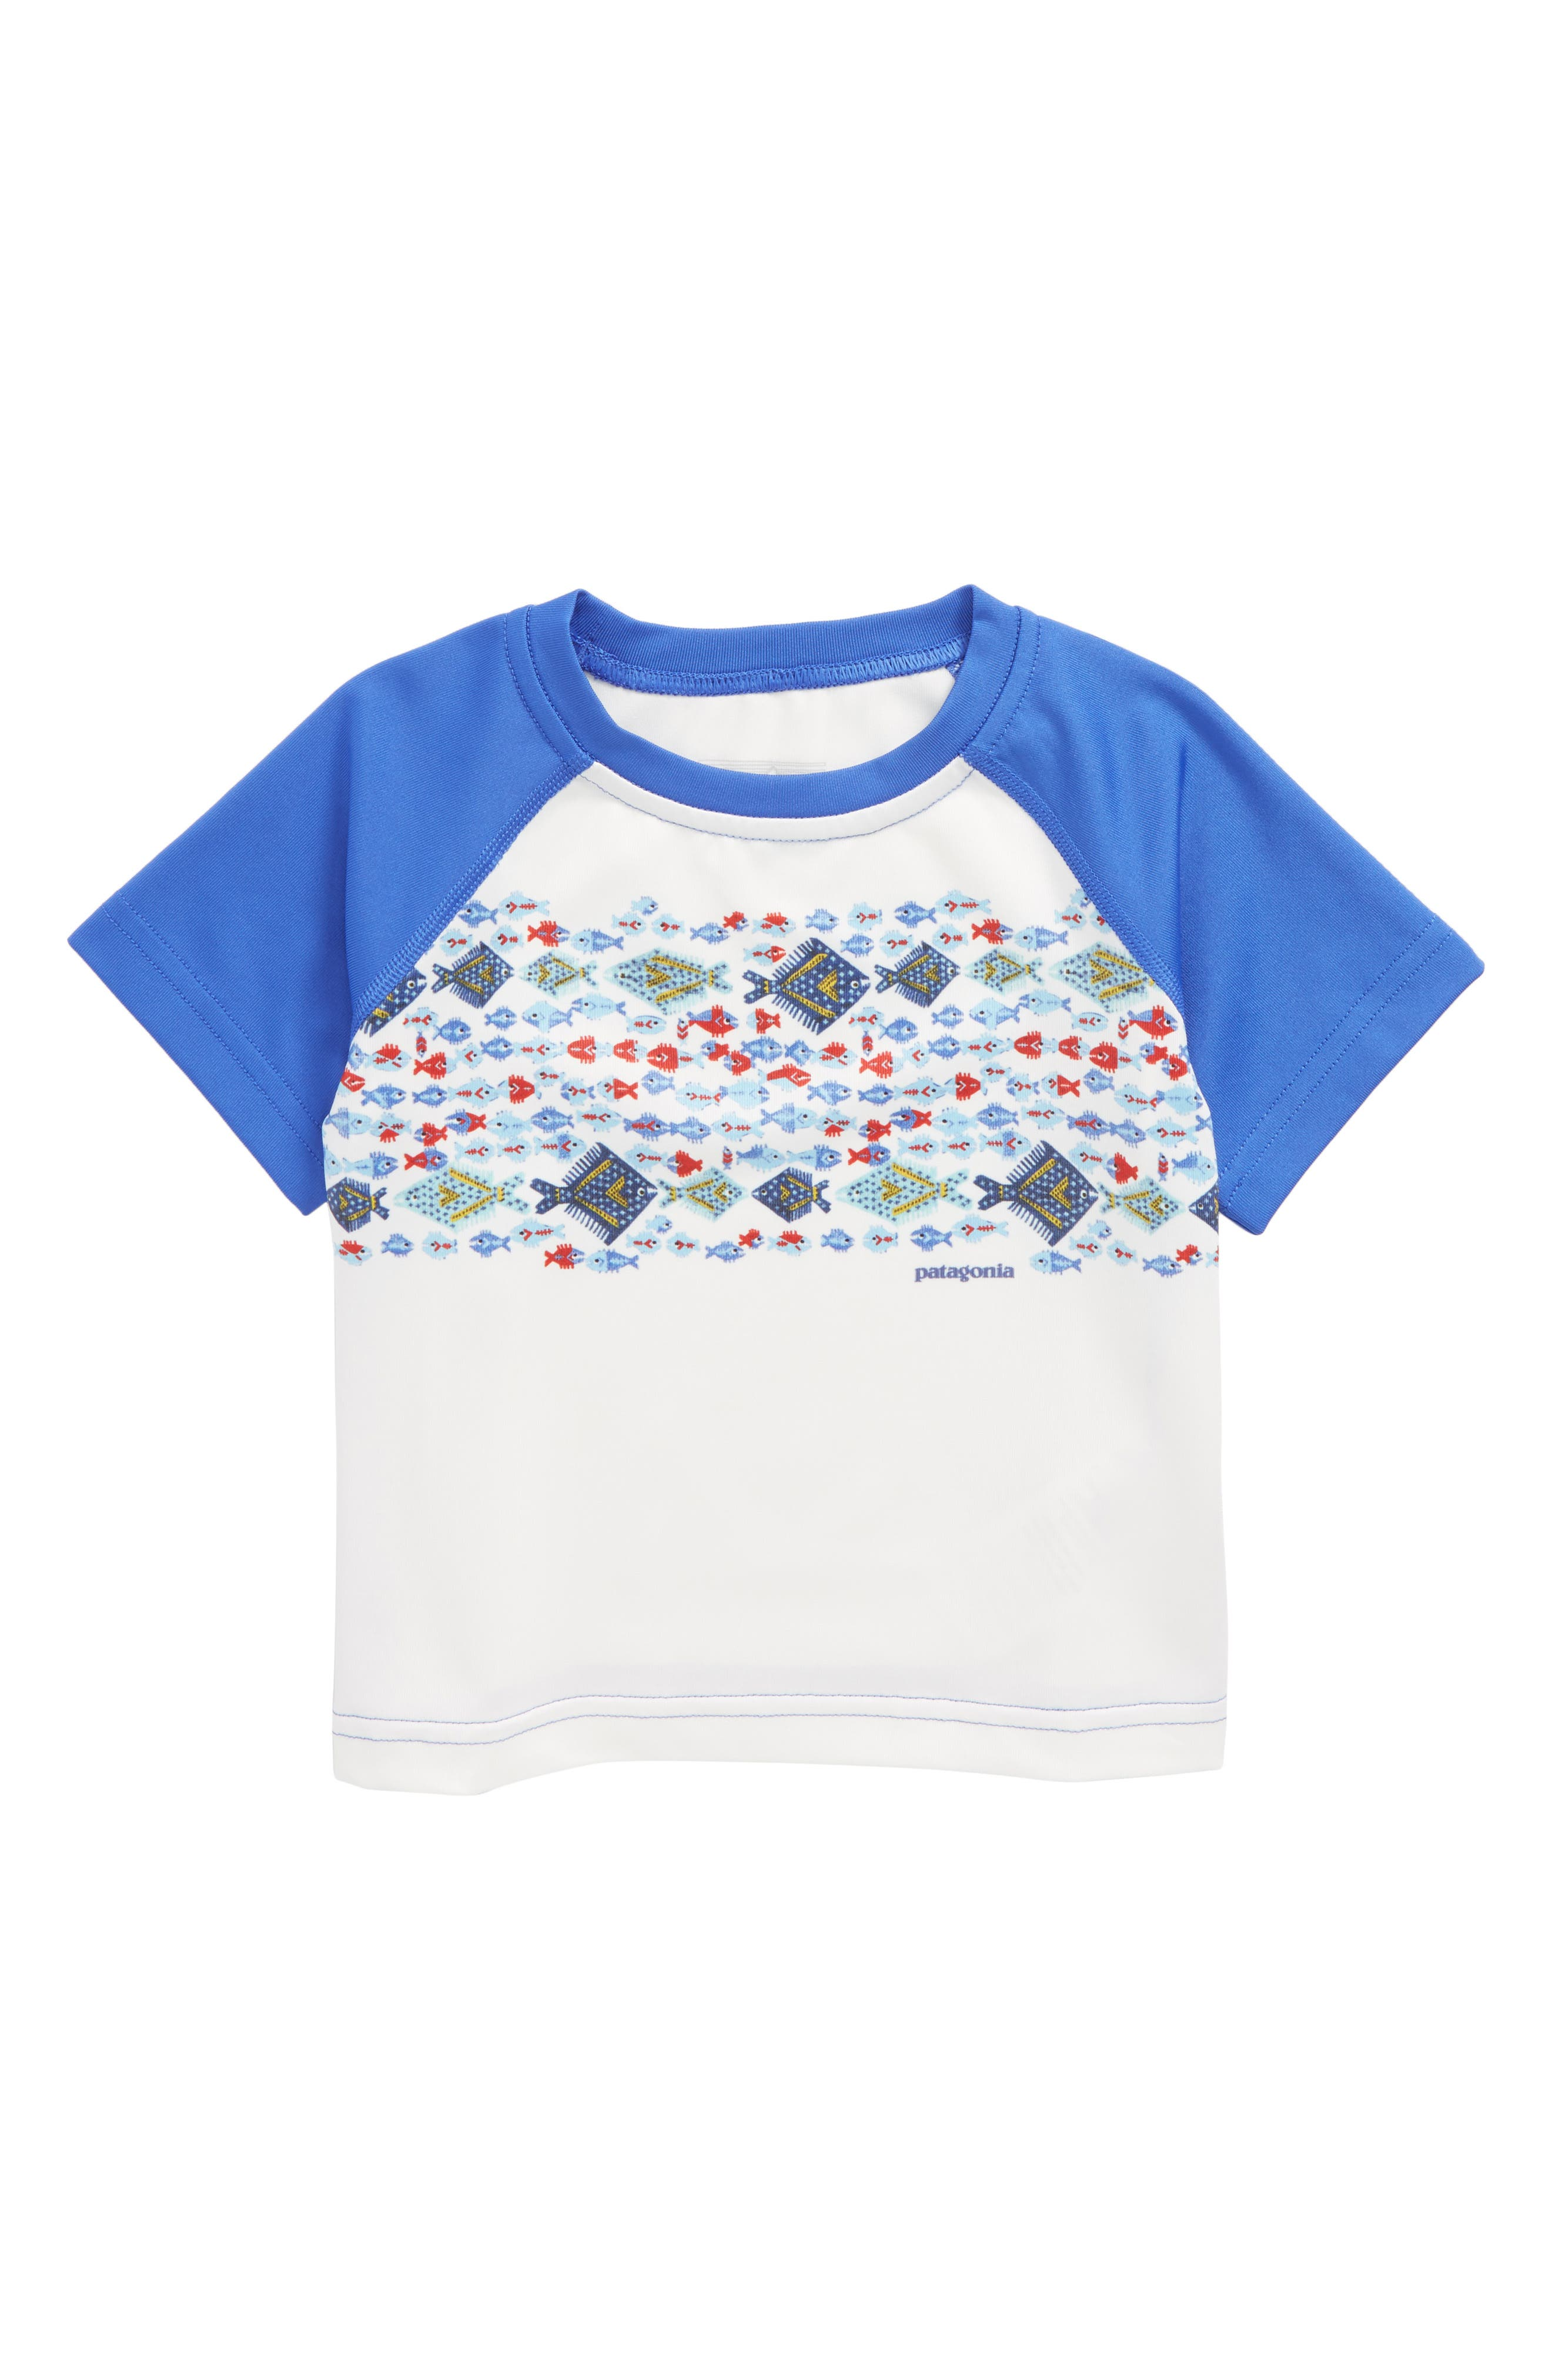 Capilene<sup>®</sup> Graphic T-Shirt,                             Main thumbnail 1, color,                             Bwim Birch White Imperial Blue